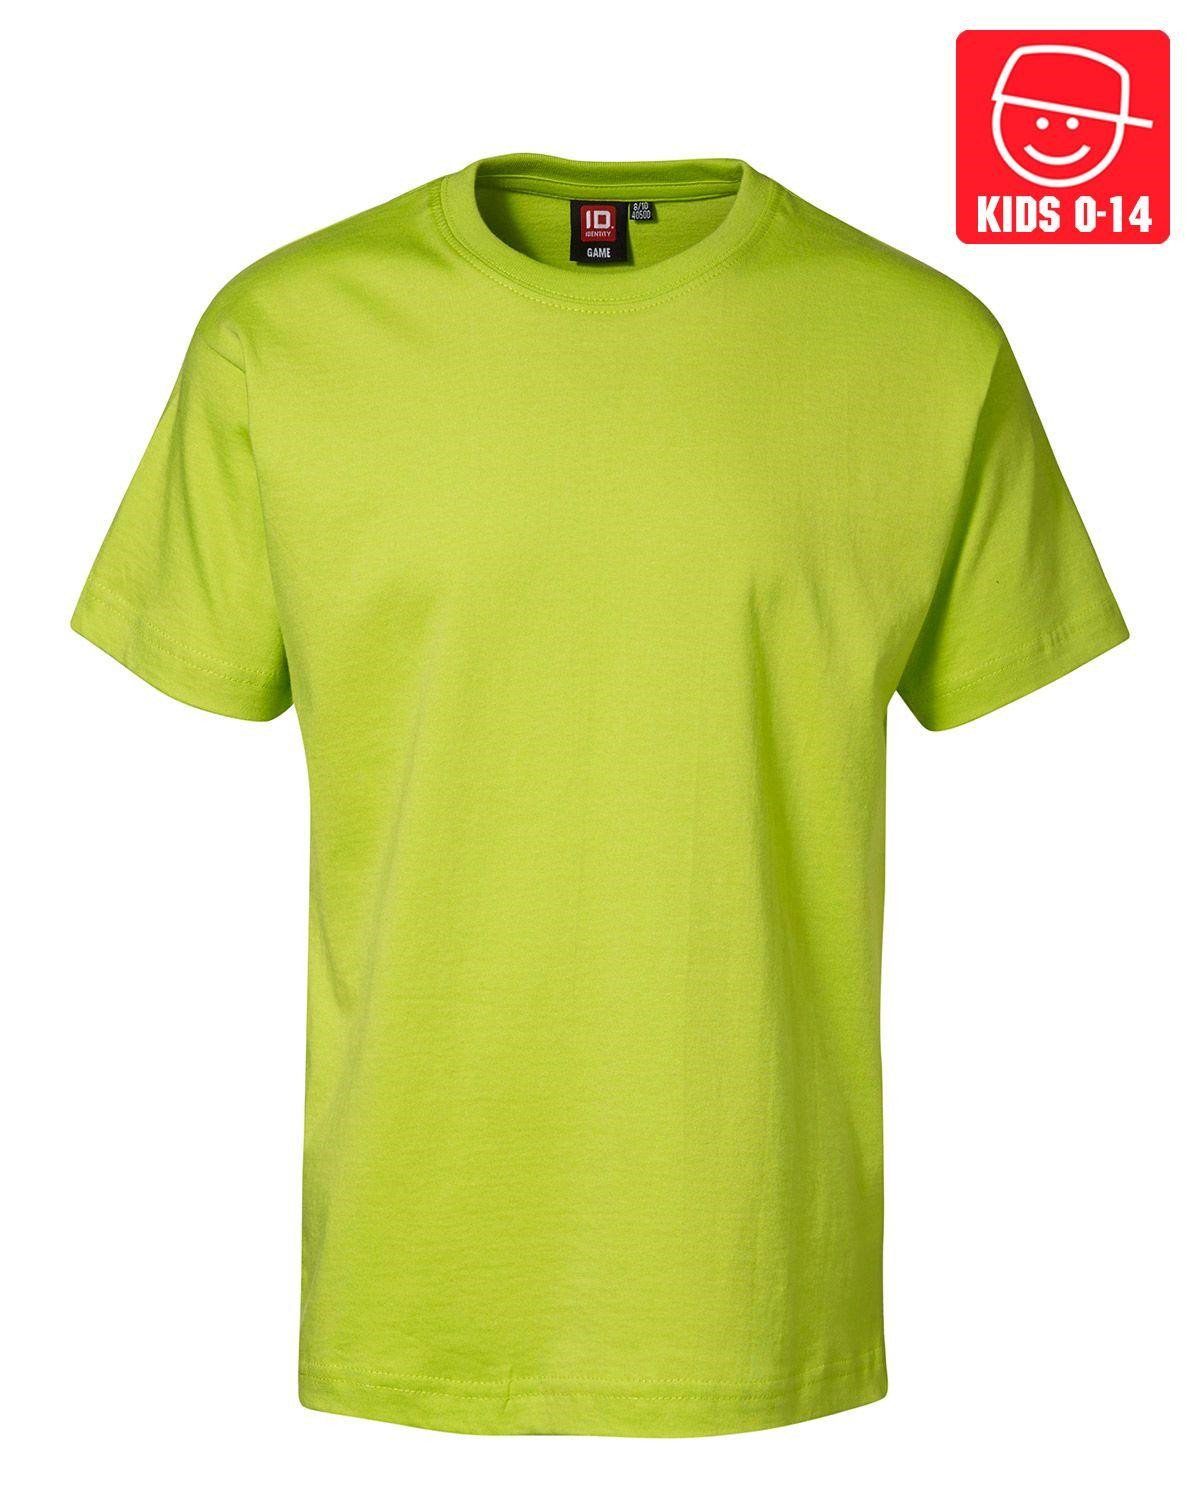 Image of   ID T-shirts (Lime, 128)